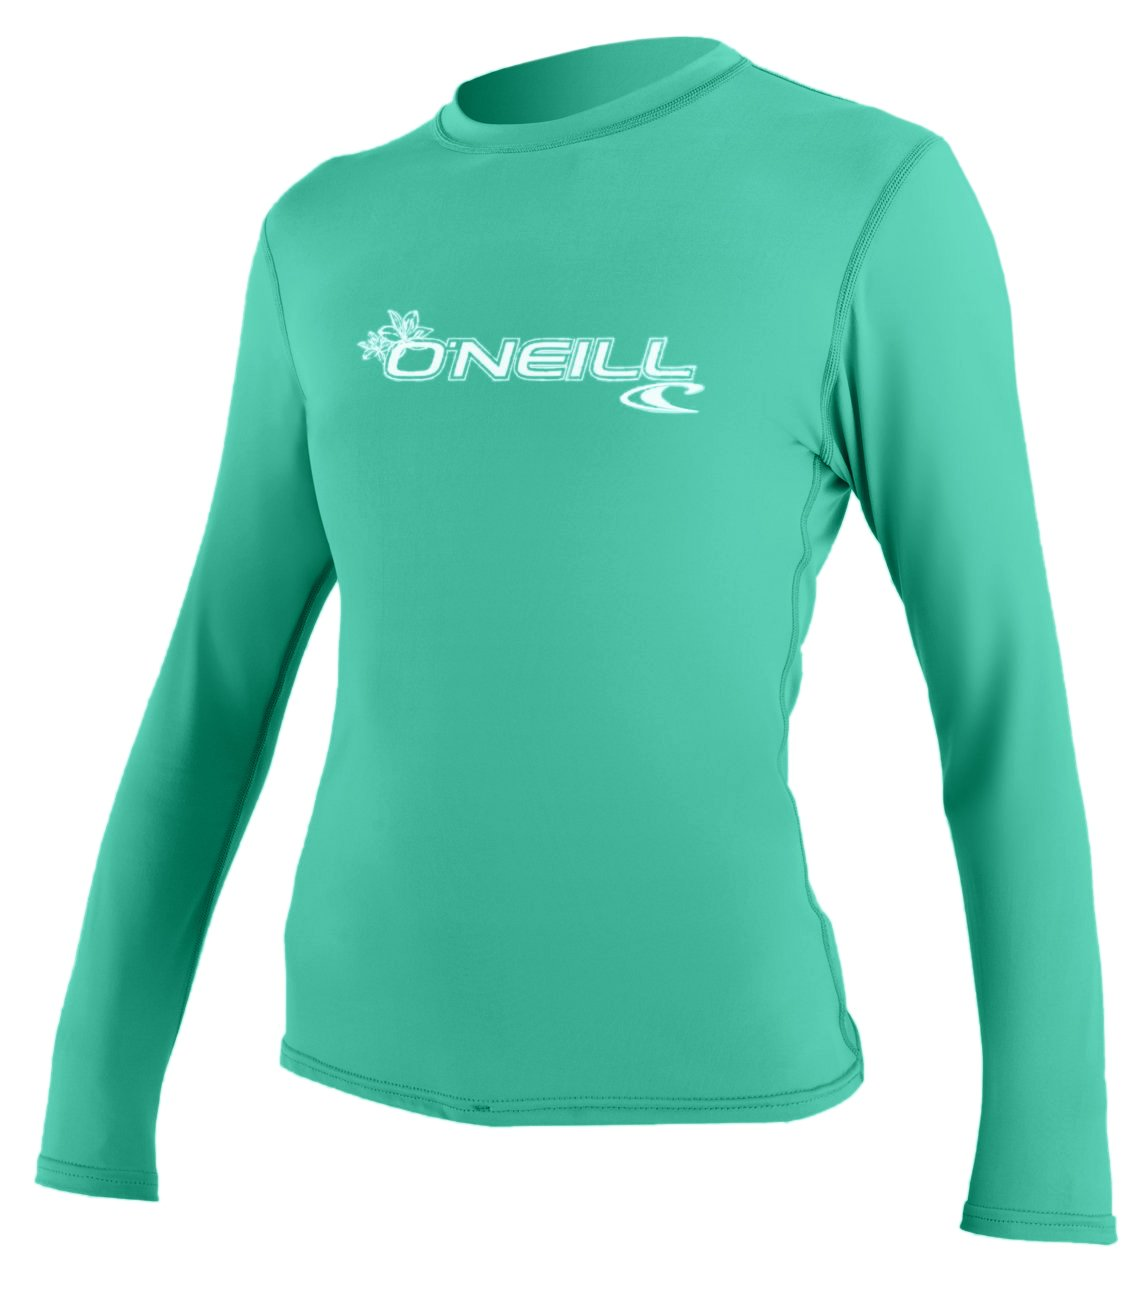 O'Neill Women's Basic Skins Upf 50+ Long Sleeve Sun Shirt, Seaglass, X-Large by O'Neill Wetsuits